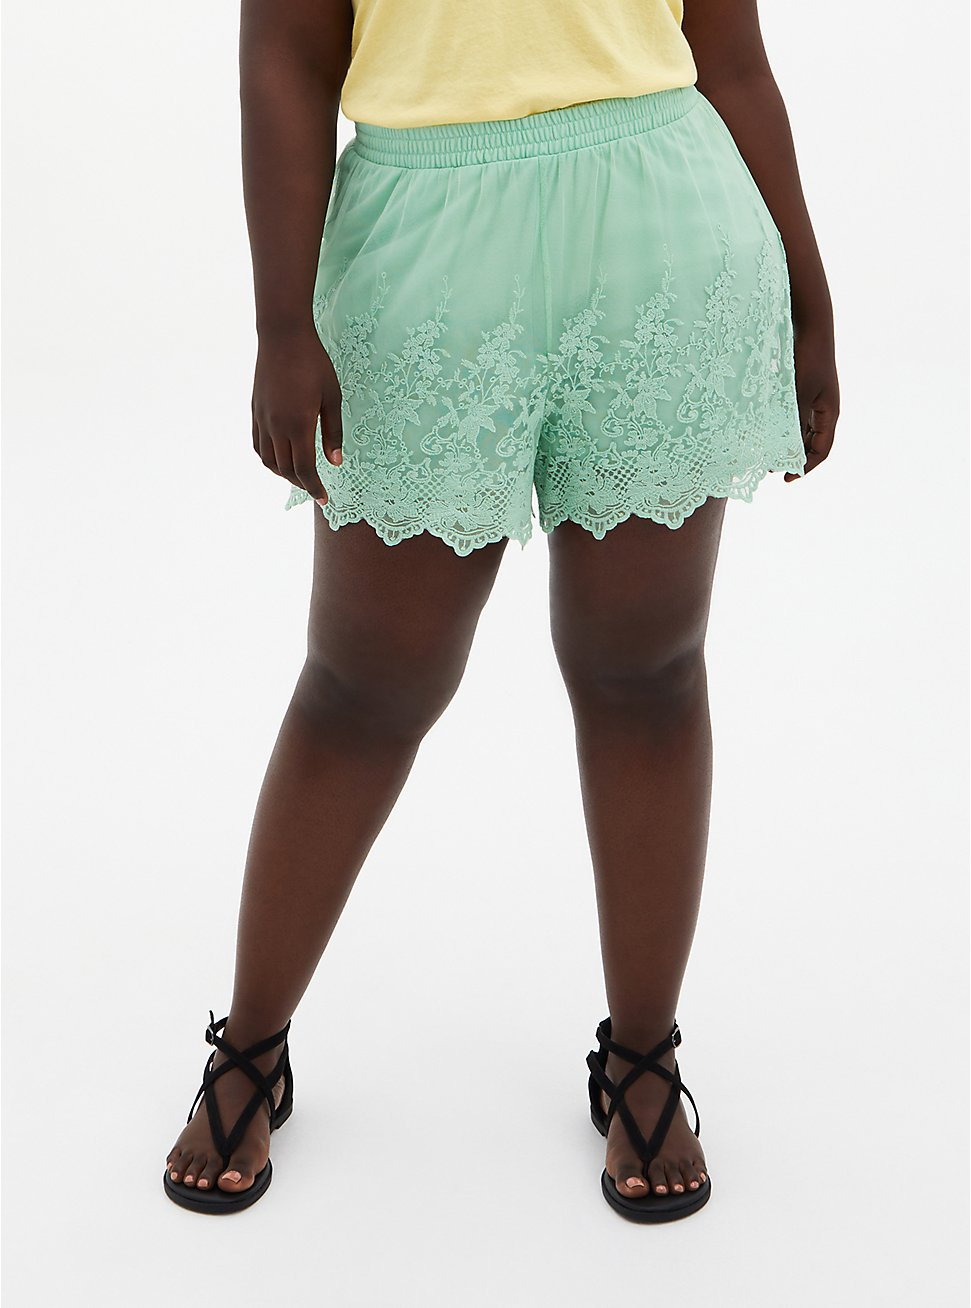 Embroidered Pull-On Short - Mesh Mint, GRAYED JADE, hi-res